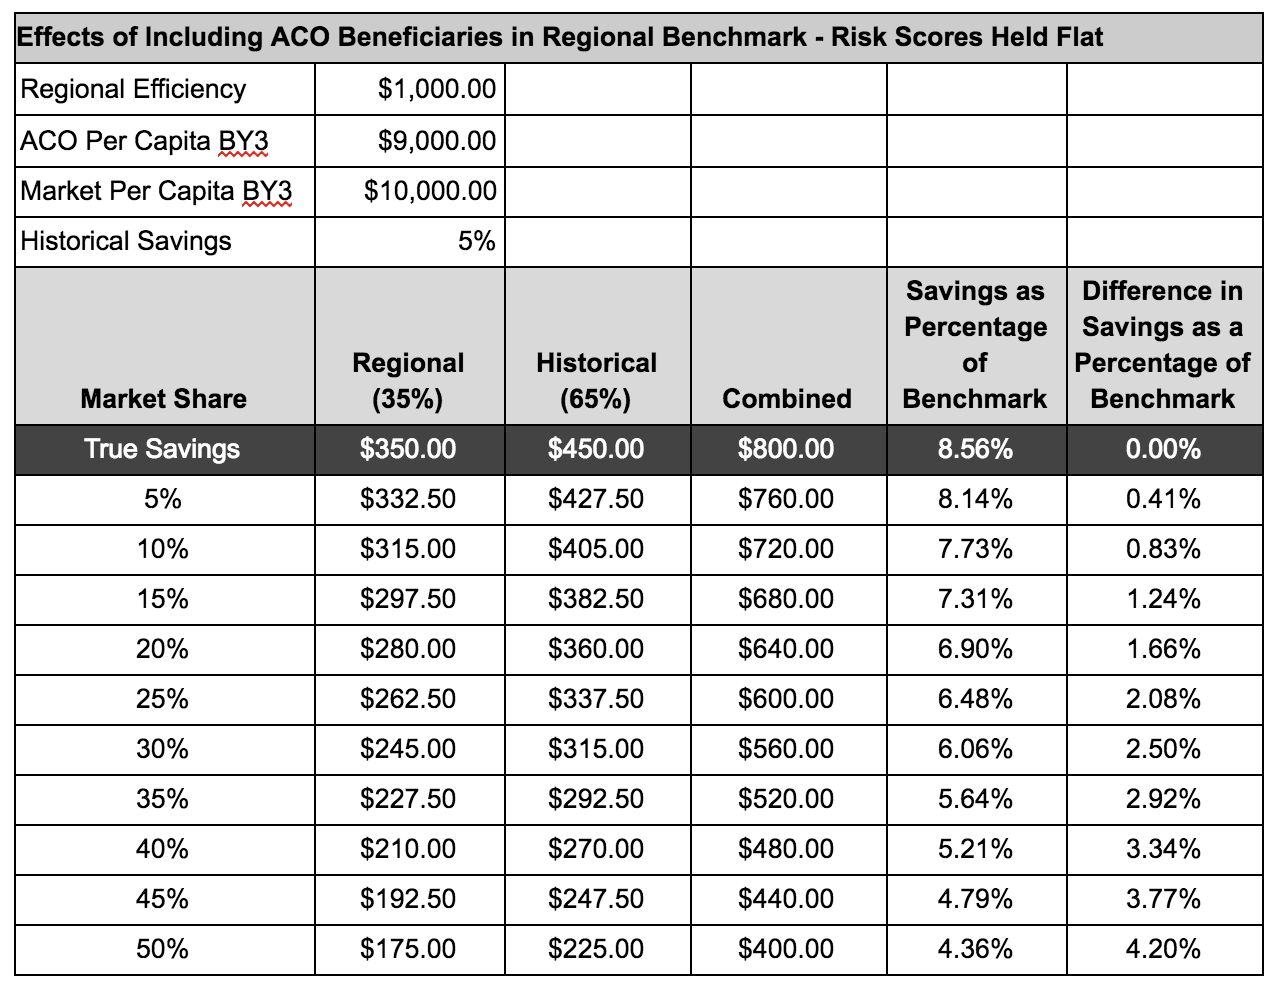 Inclusion of ACO Beneficiaries in Regional Benchmark